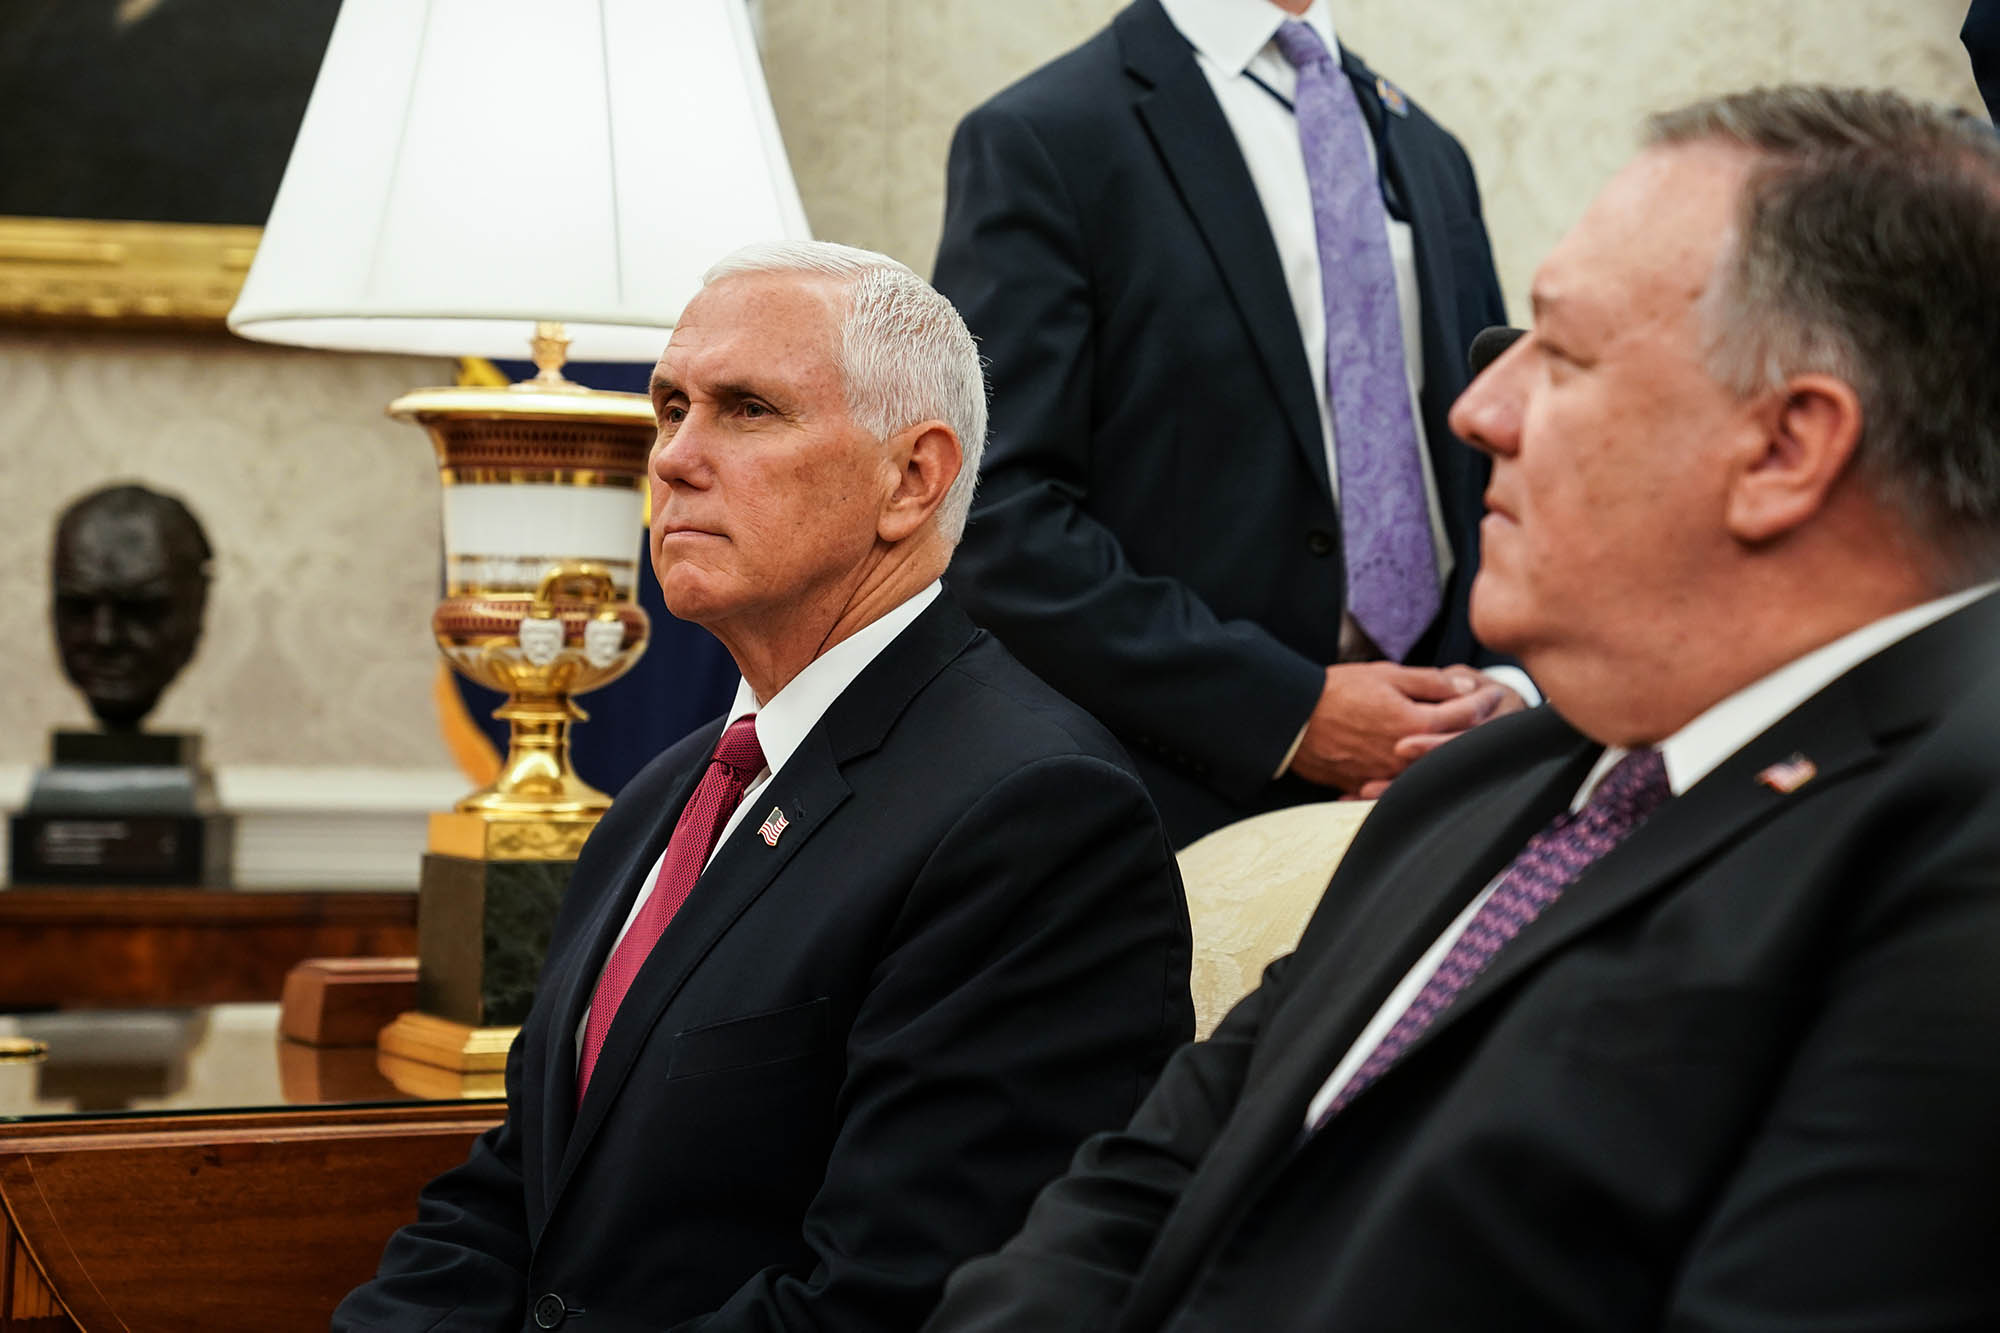 US Vice President Mike Pence listens during a meeting between US President Donald Trump and Mustafa al-Kadhimi, Iraq's prime minister, not pictured, at the White House in Washington, DC, on Thursday, August 20.